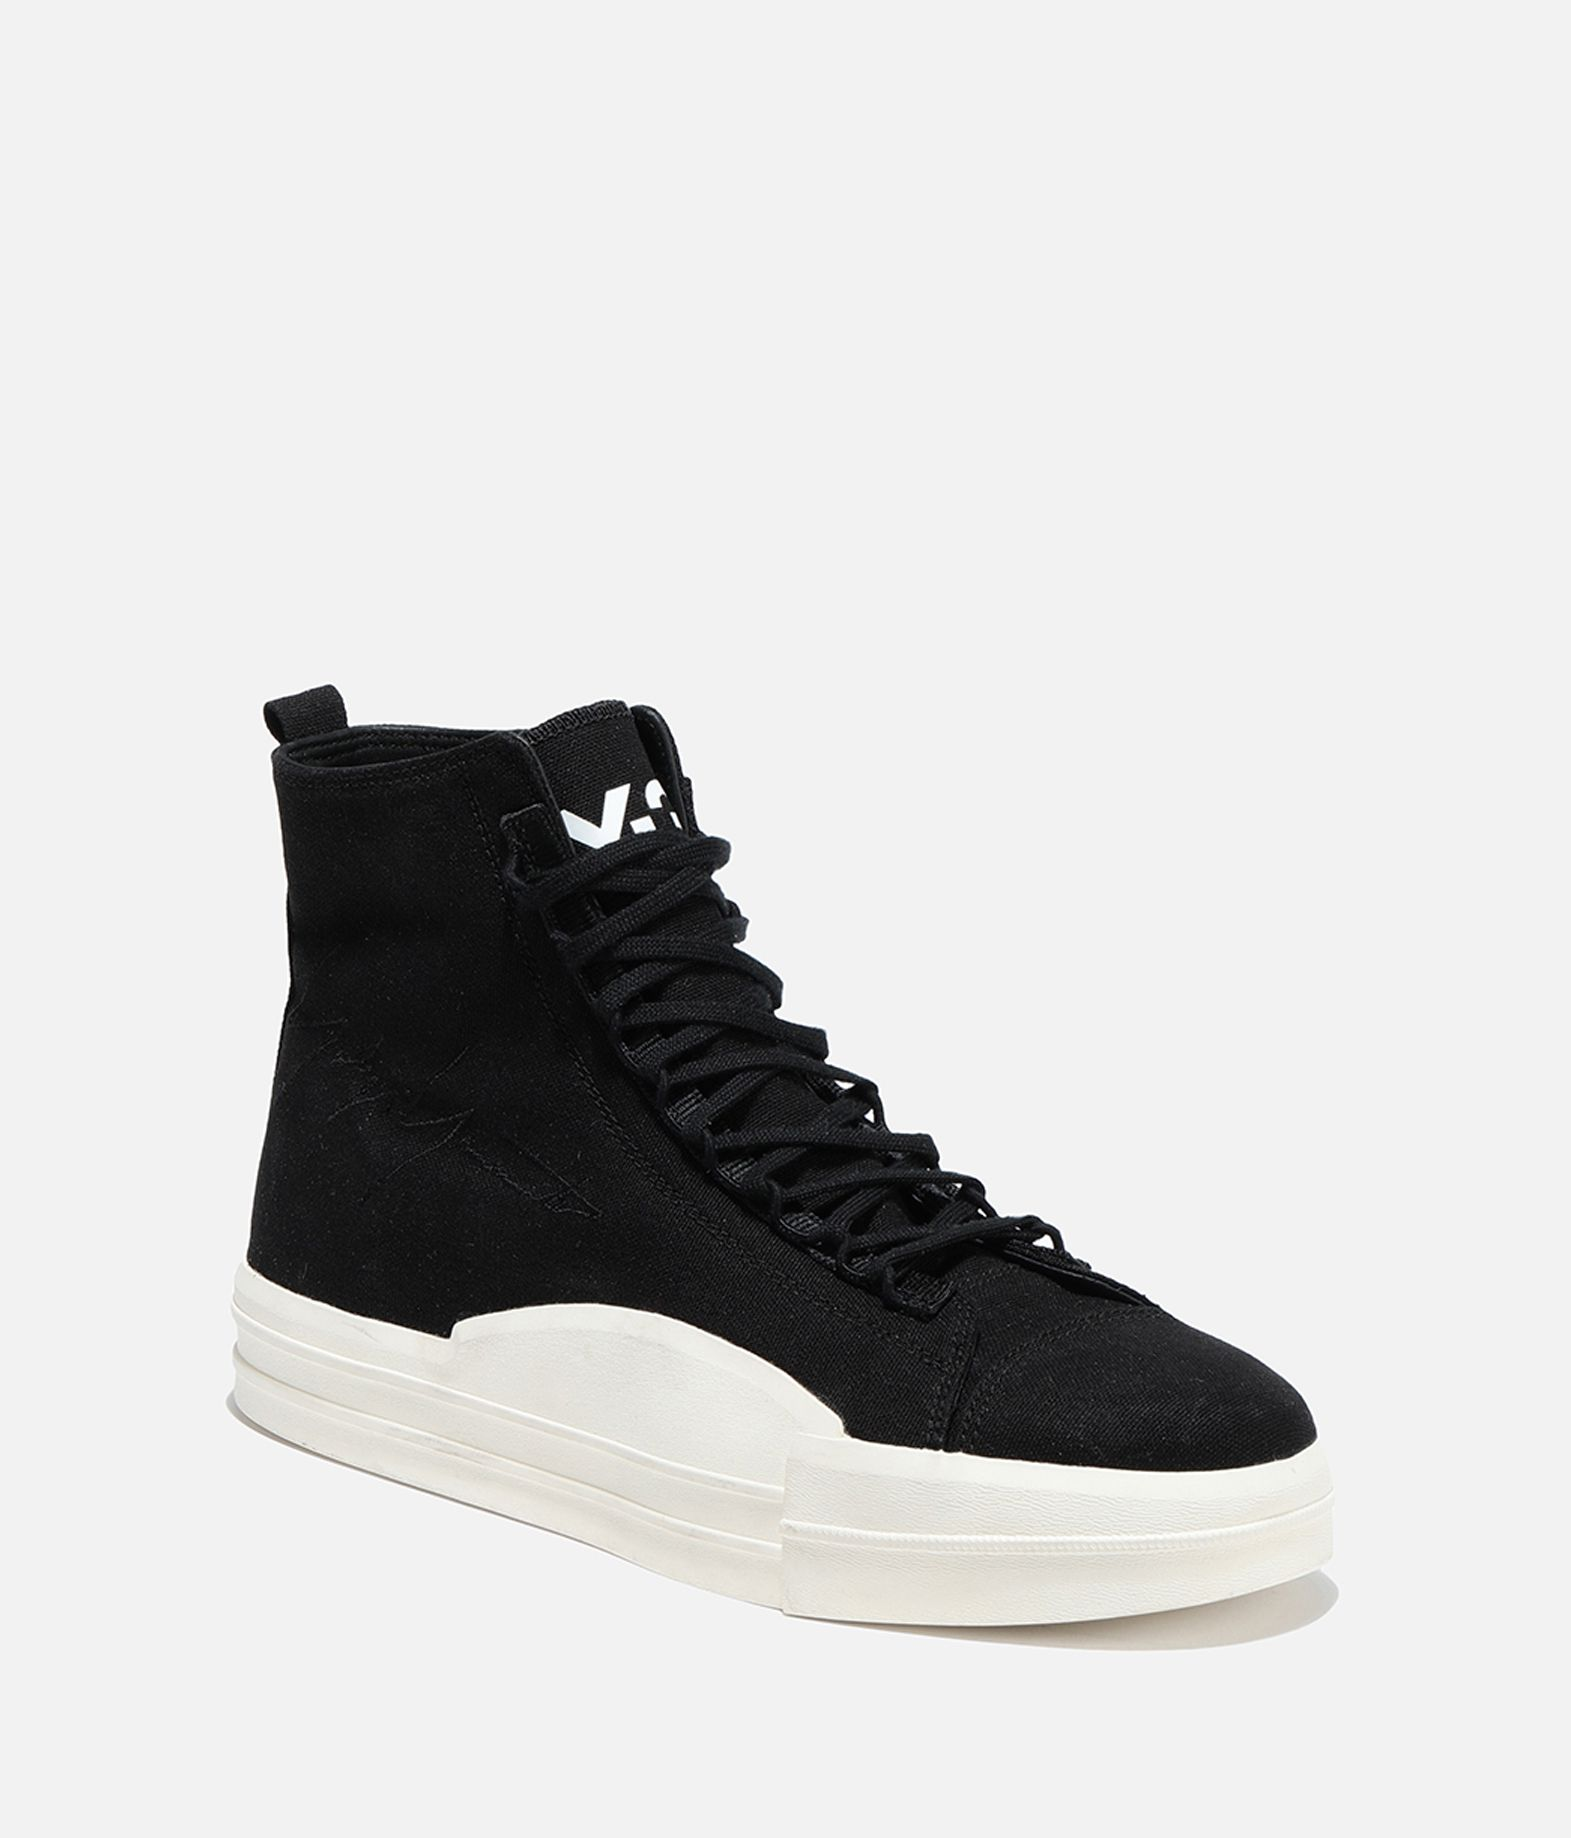 Y-3 Y-3 Yuben Mid High-top sneakers E e